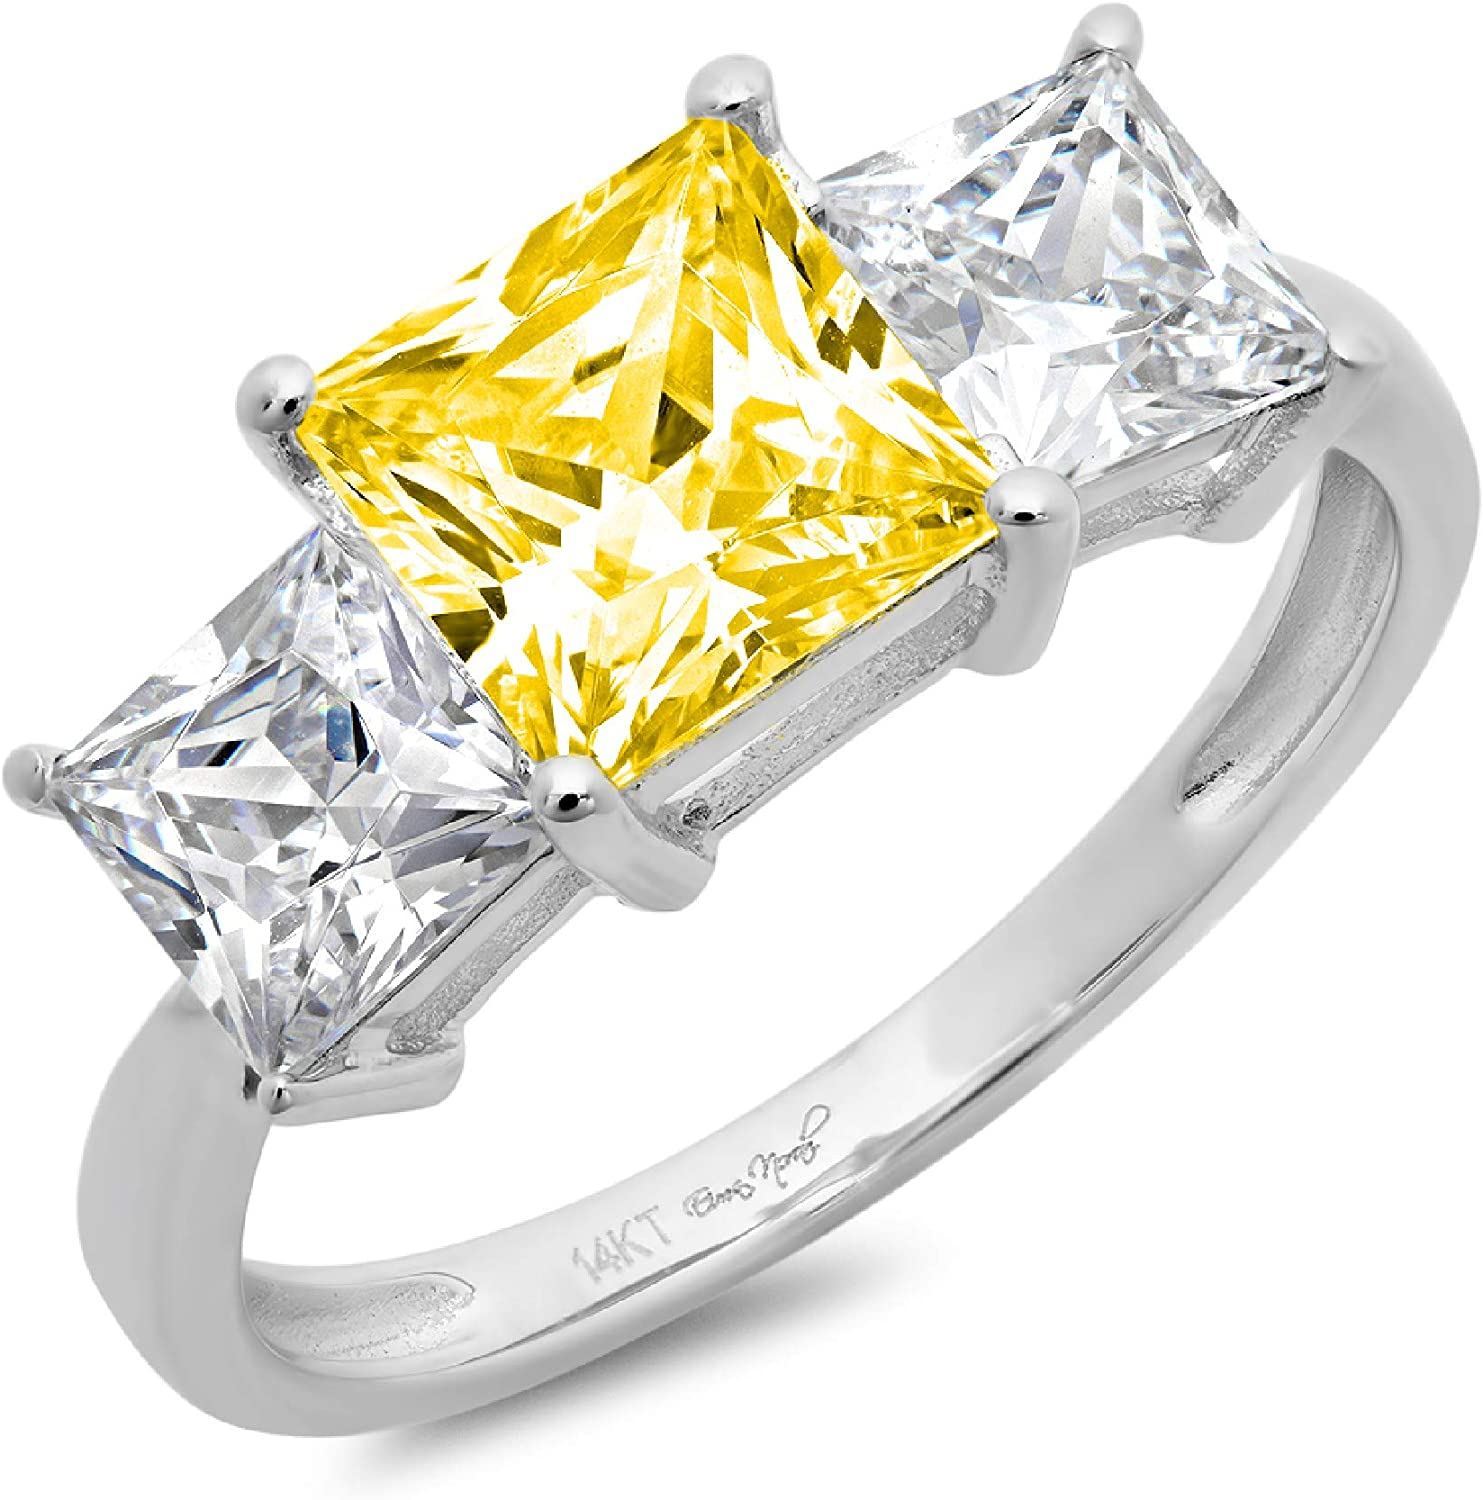 2.94ct Princess Cut 3 Stone Solitaire with Accent Canary Yellow Ideal VVS1 Simulated Diamond CZ Engagement Promise Statement Anniversary Bridal Wedding Ring 14k White Gold